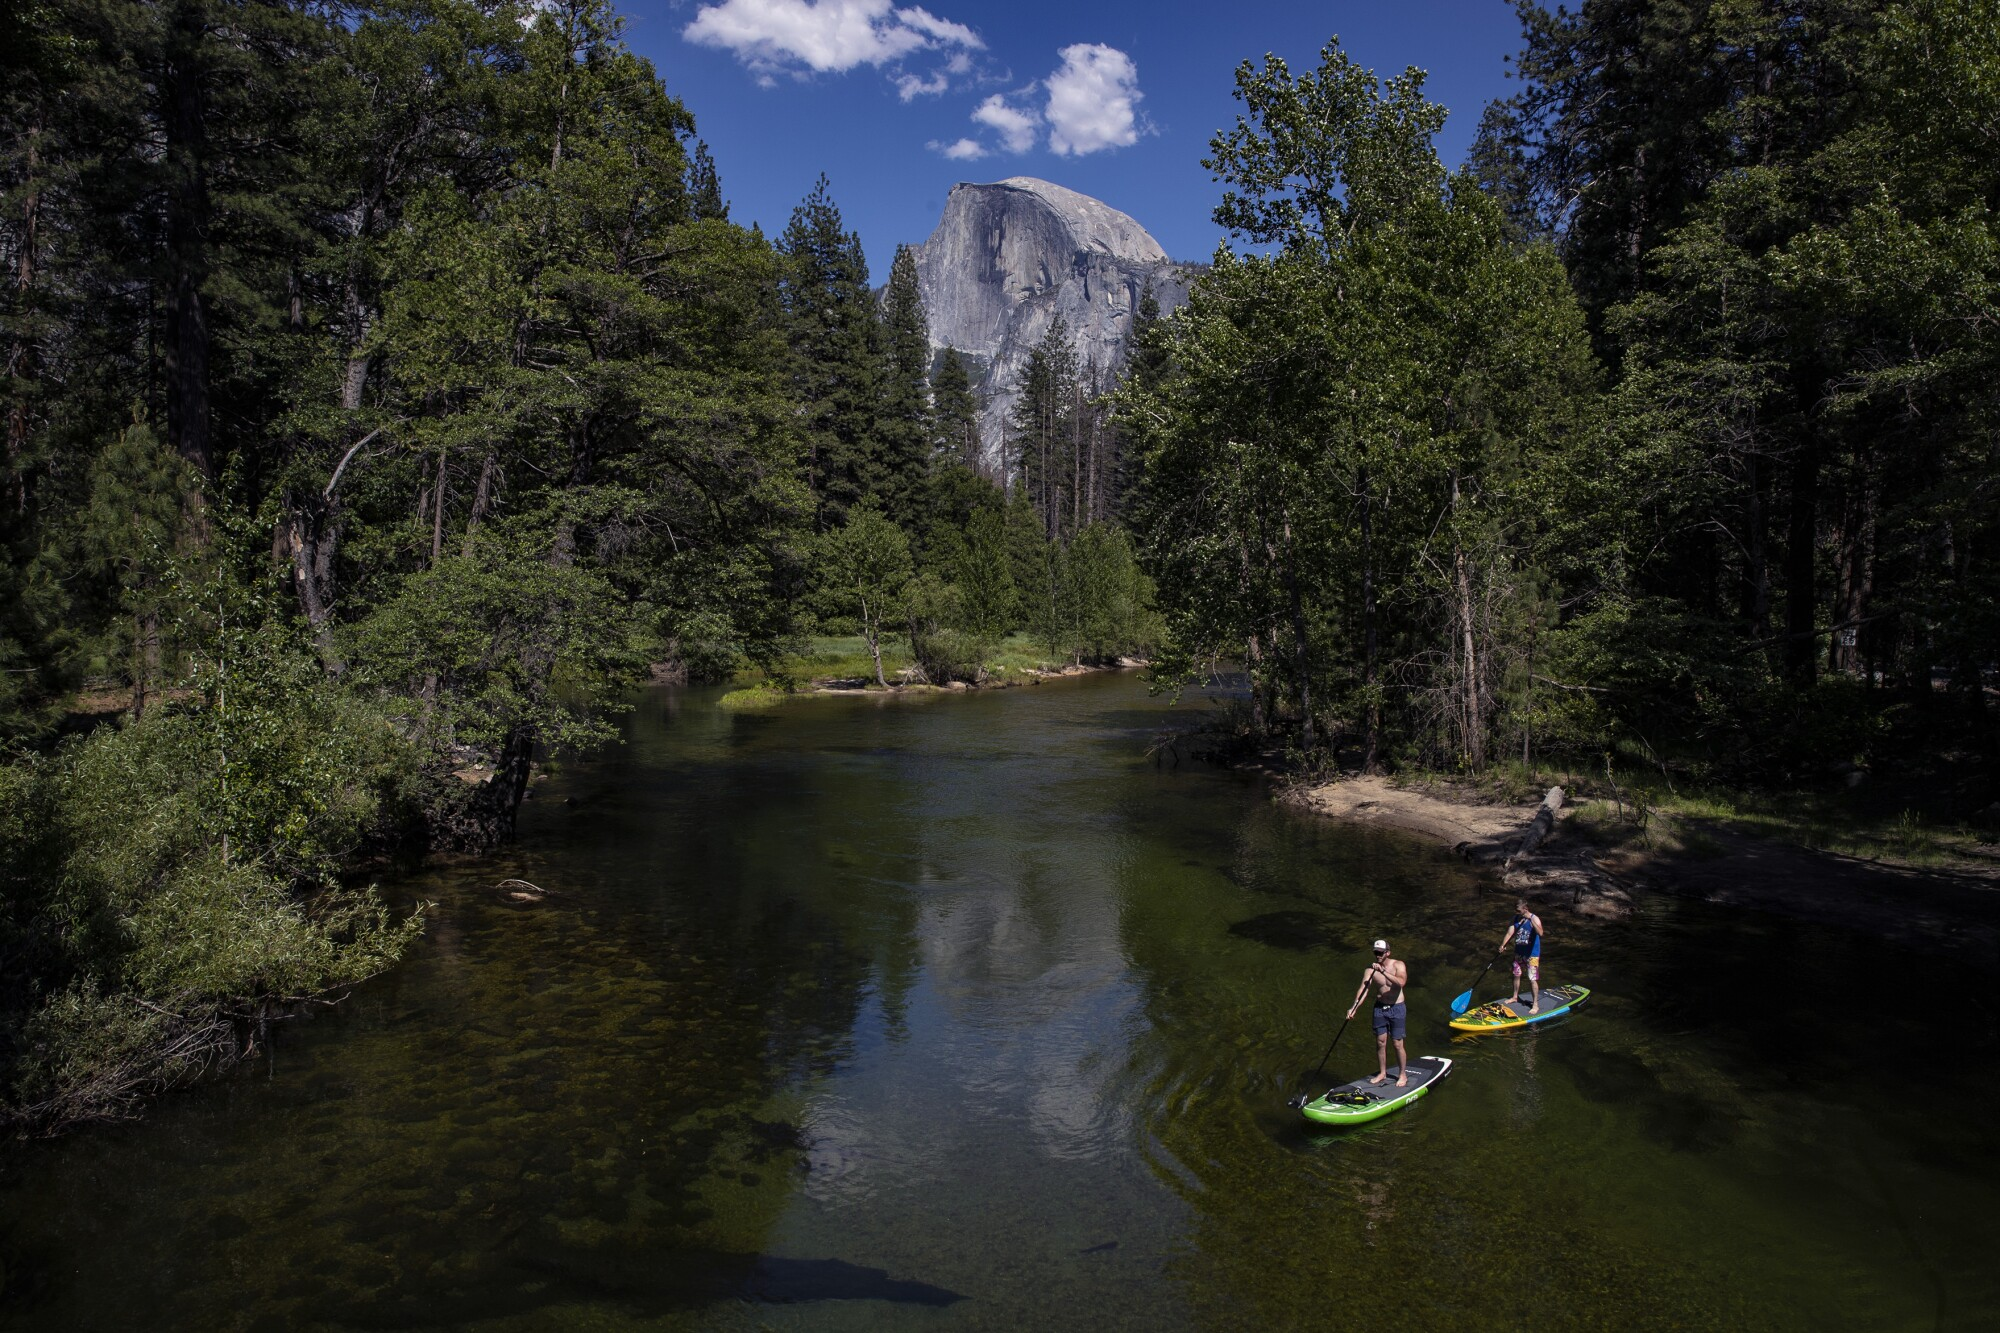 Paddleboarders on the Merced River in Yosemite Valley.